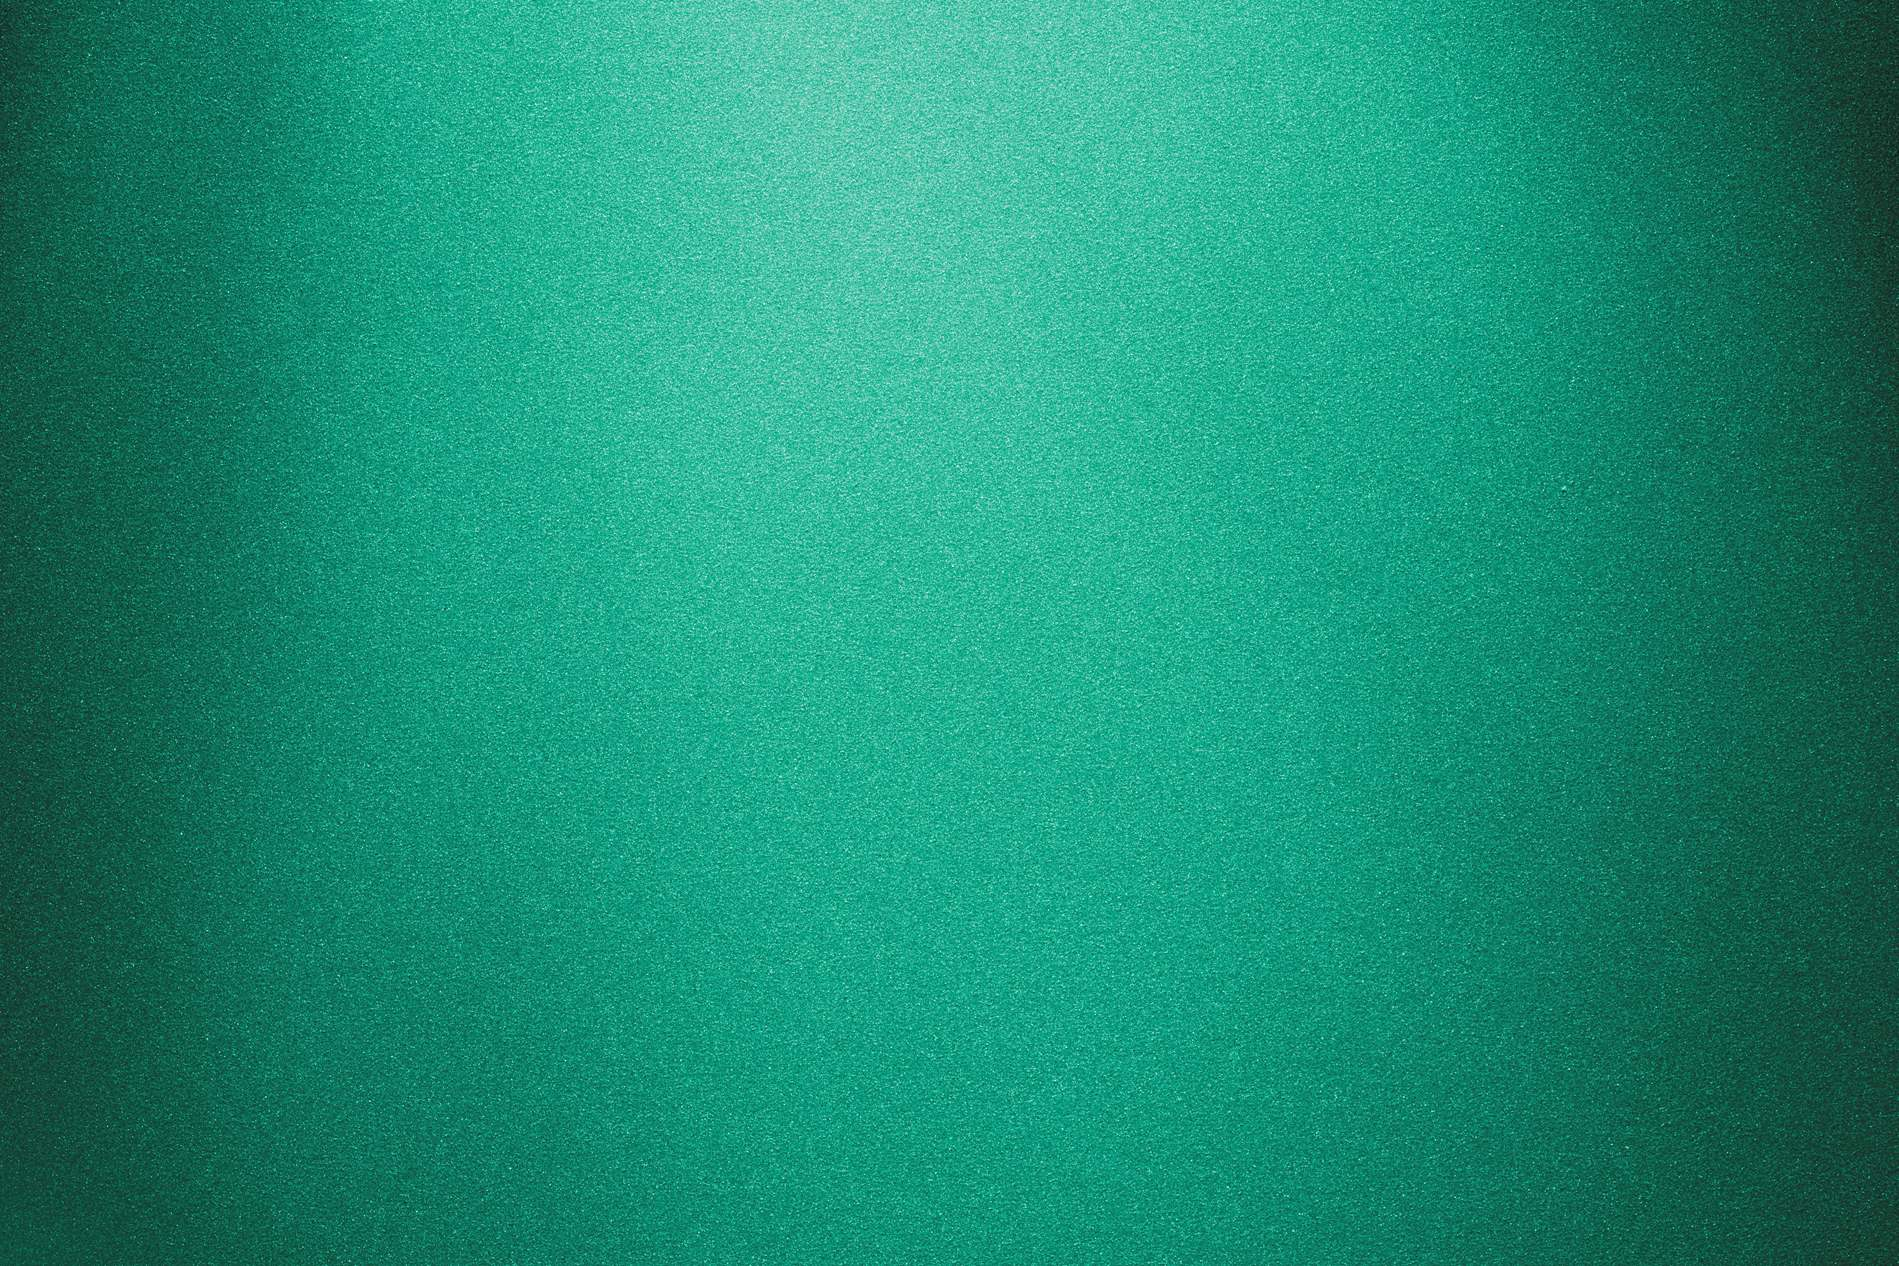 clean vintage green wall background texture photohdx